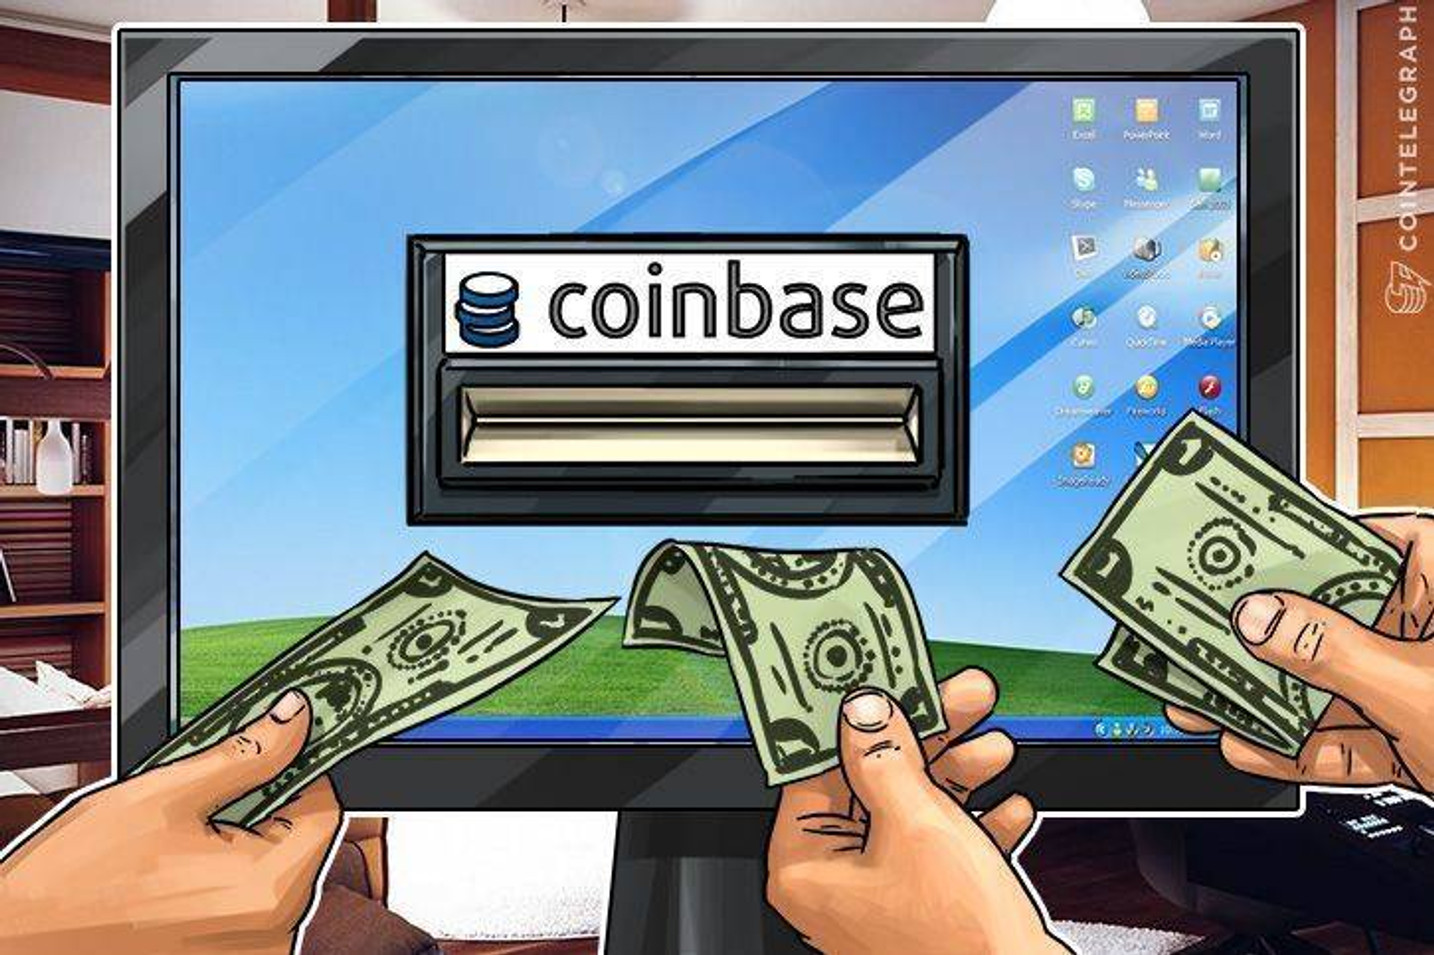 Coinbase Announces Launch of Coinbase Pro, Paradex Acquisition